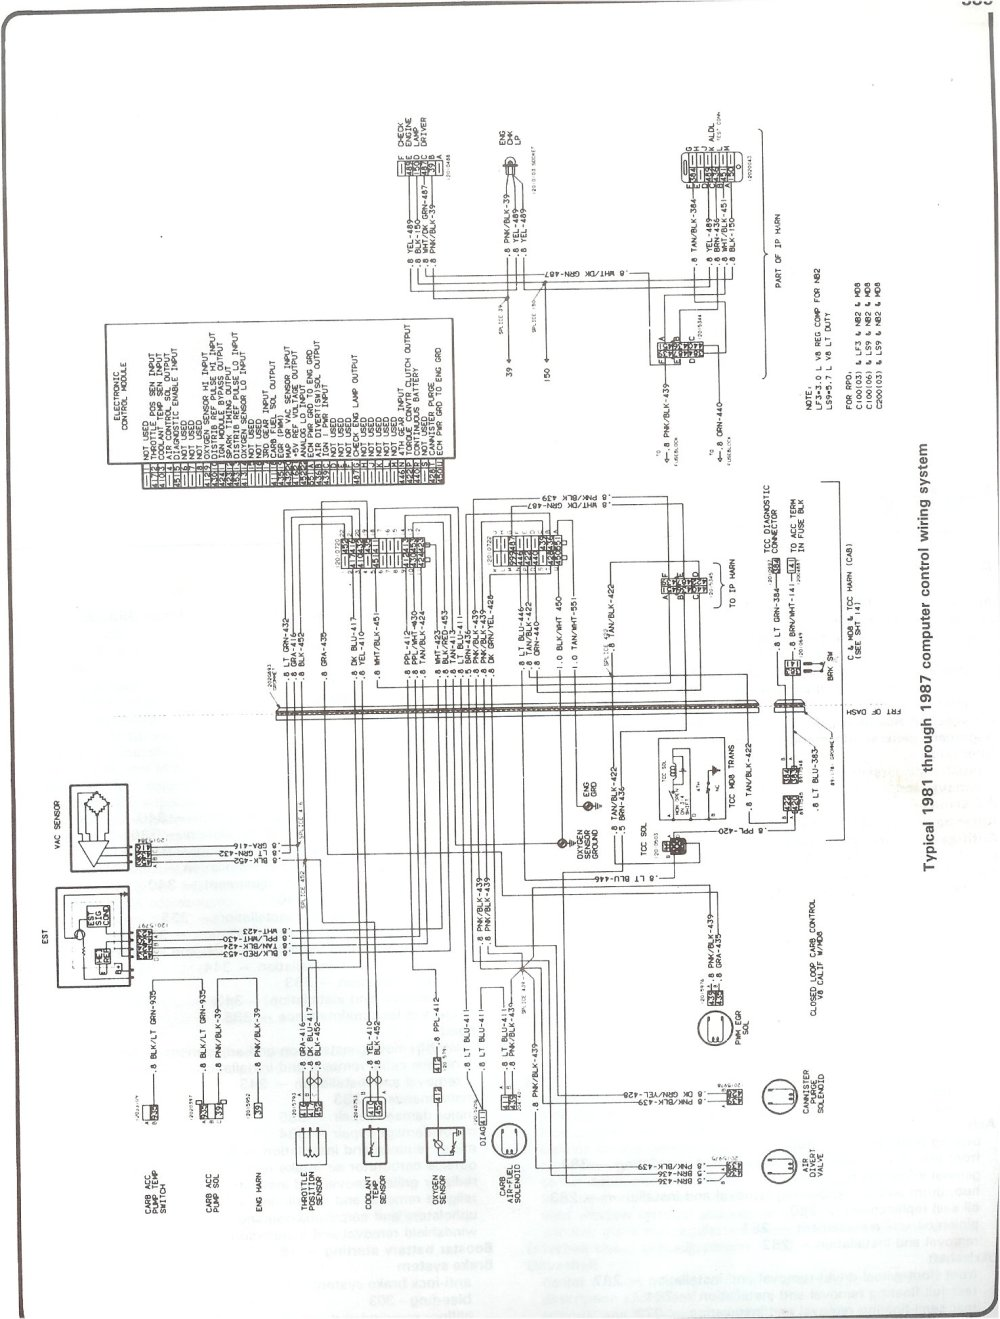 medium resolution of 1987 chevy c10 wiring diagram wiring diagram detailed 1957 chevy headlight switch wiring diagram 85 chevy truck wiring diagram